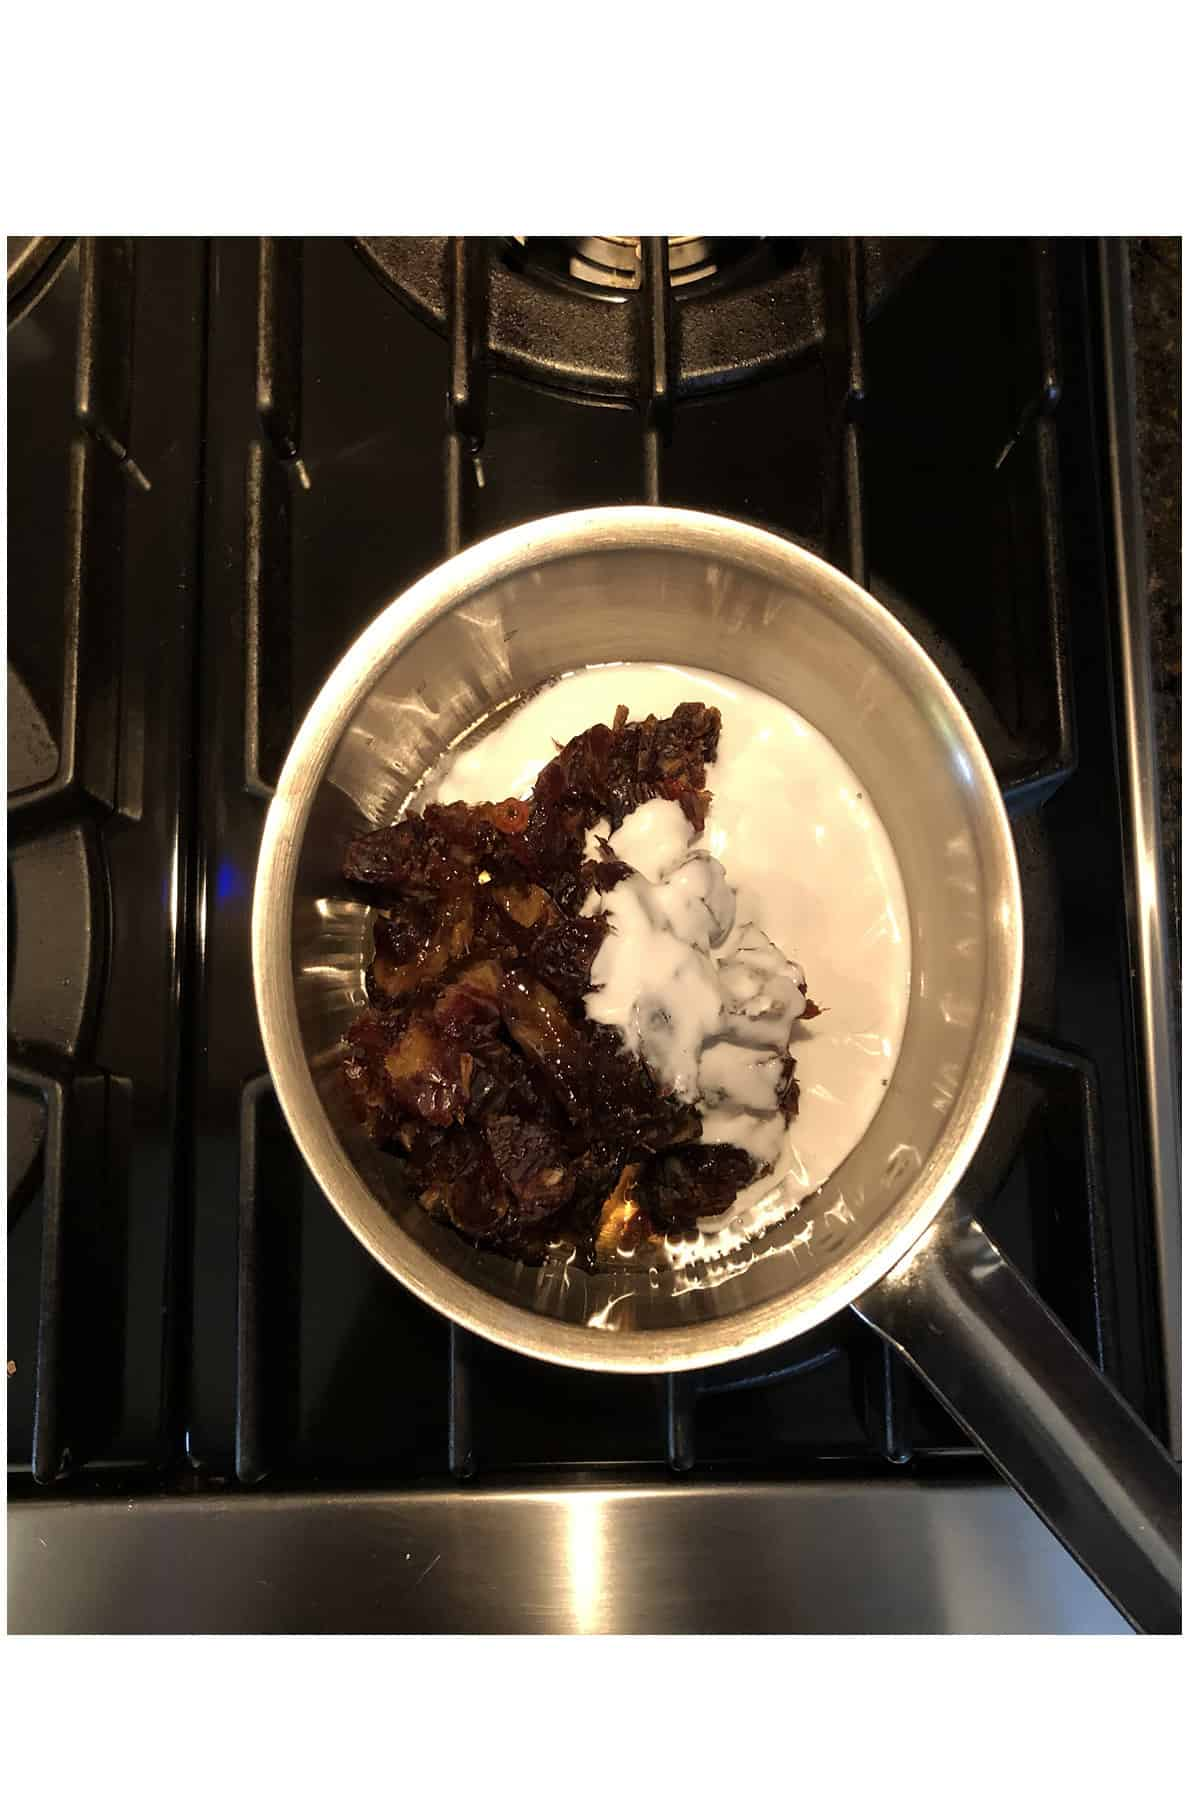 Birds eye view of dates, coconut cream, and maple syrup cooking in a pot on top of the stove.